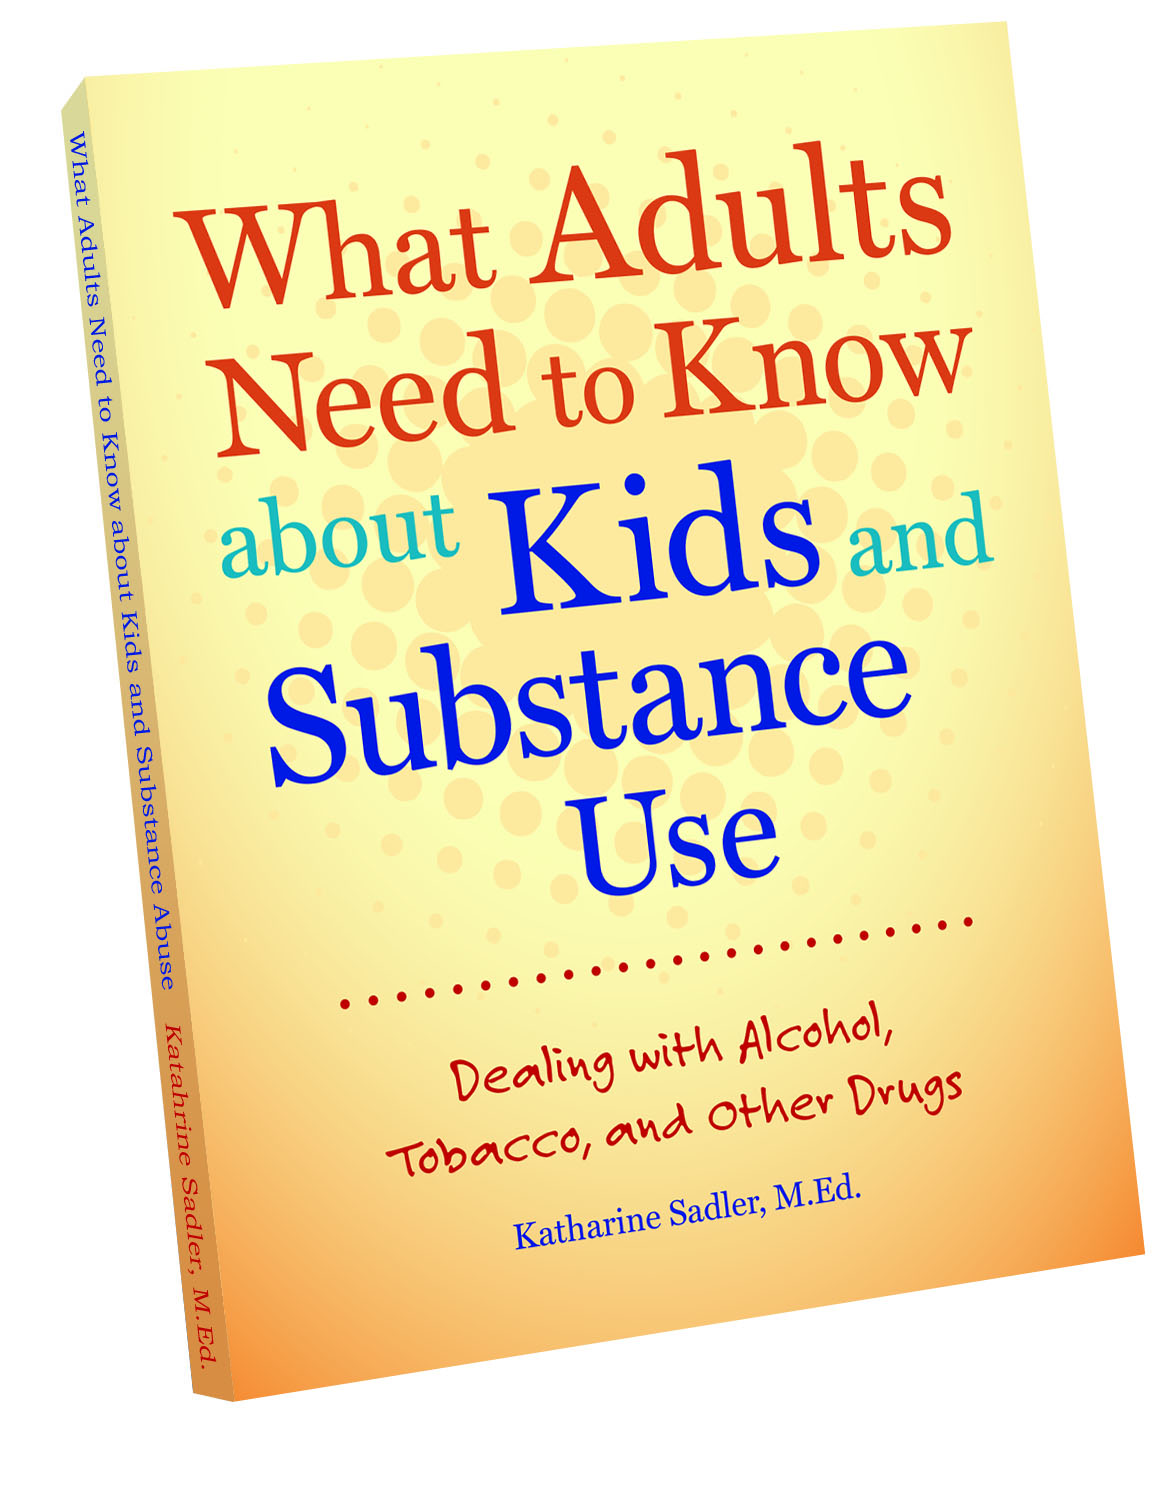 What Adults Need to Know about Kids and Substance Abuse